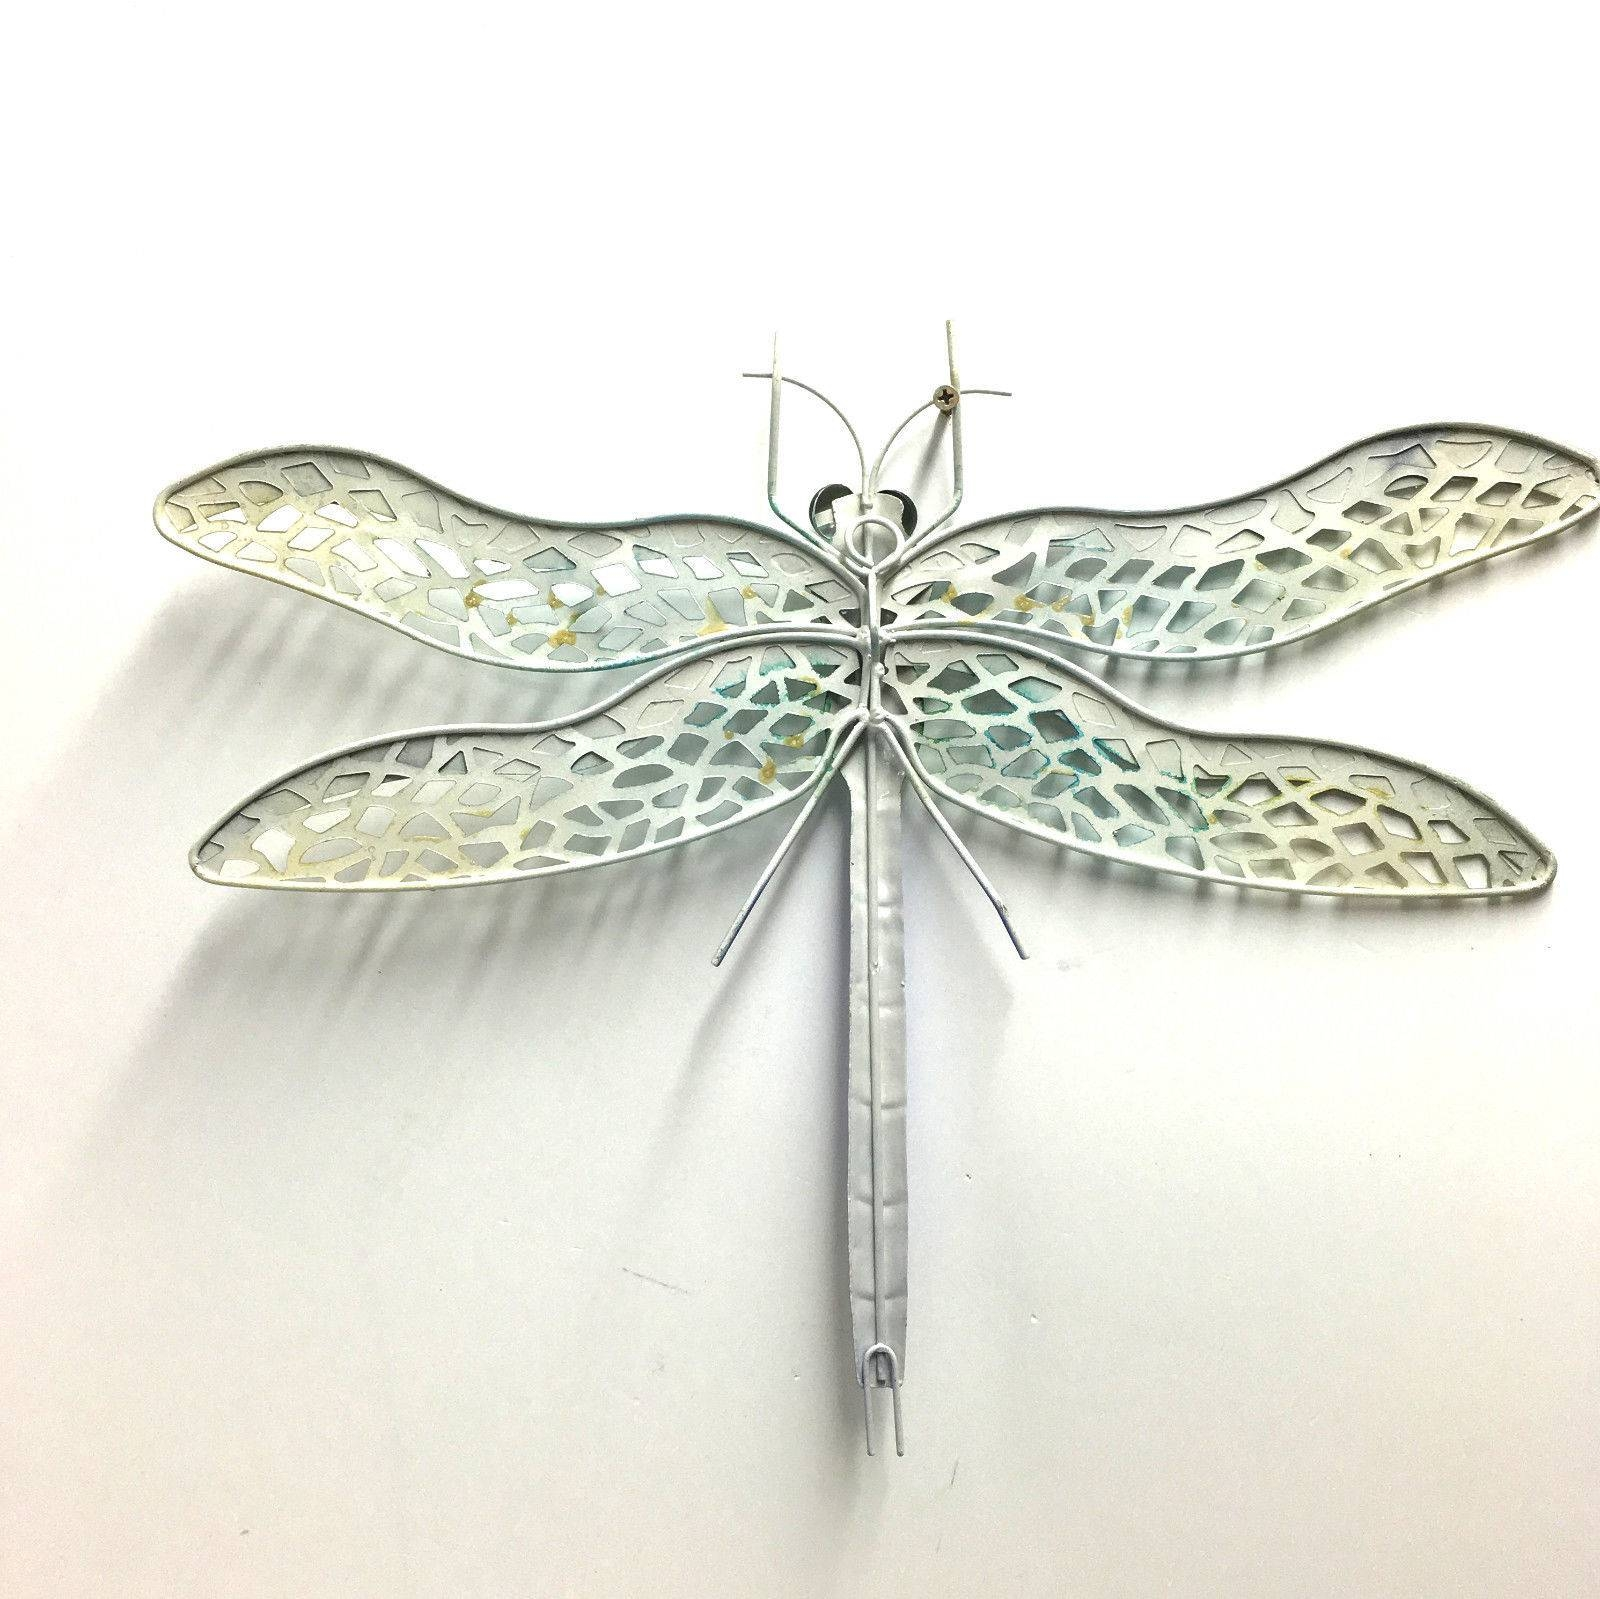 Dragonfly Metal Wall Art Hanging Iron Ornament Garden Sculpture Throughout Most Popular Dragonfly Metal Wall Art (View 5 of 20)